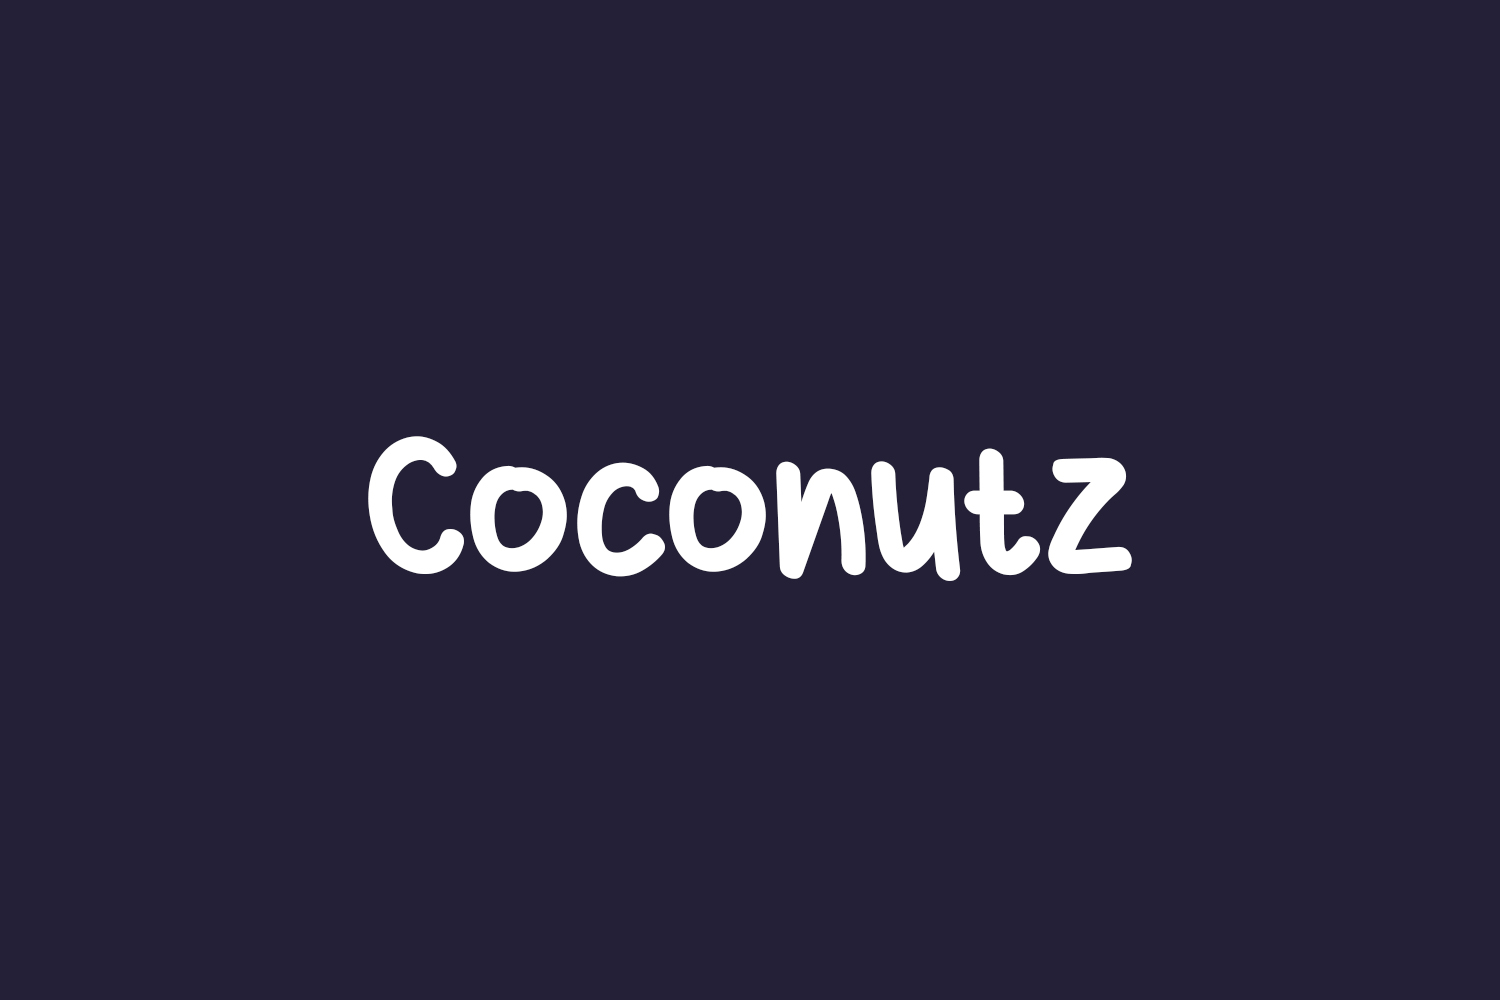 Coconutz Free Font